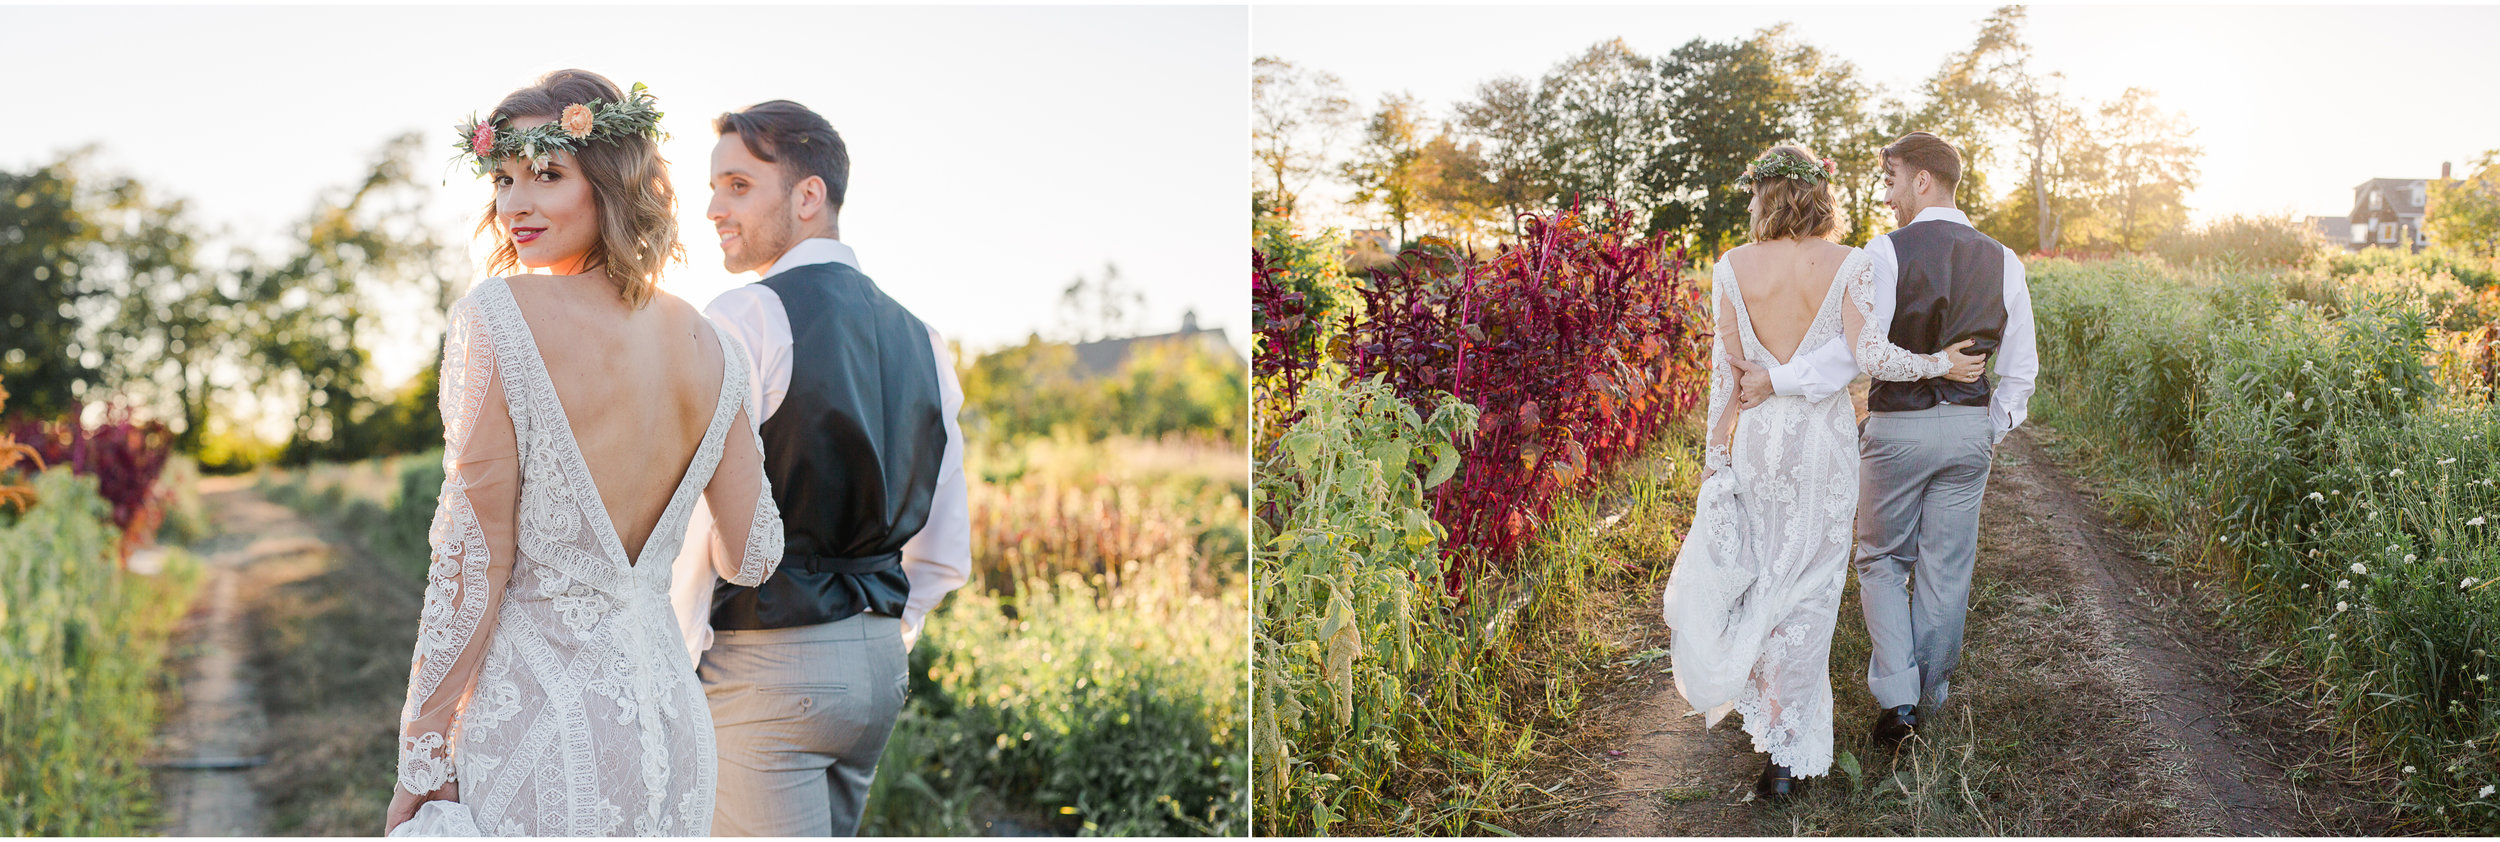 Coastal Fall Wedding Shoot in Cape Elizabeth, Maine 21.jpg